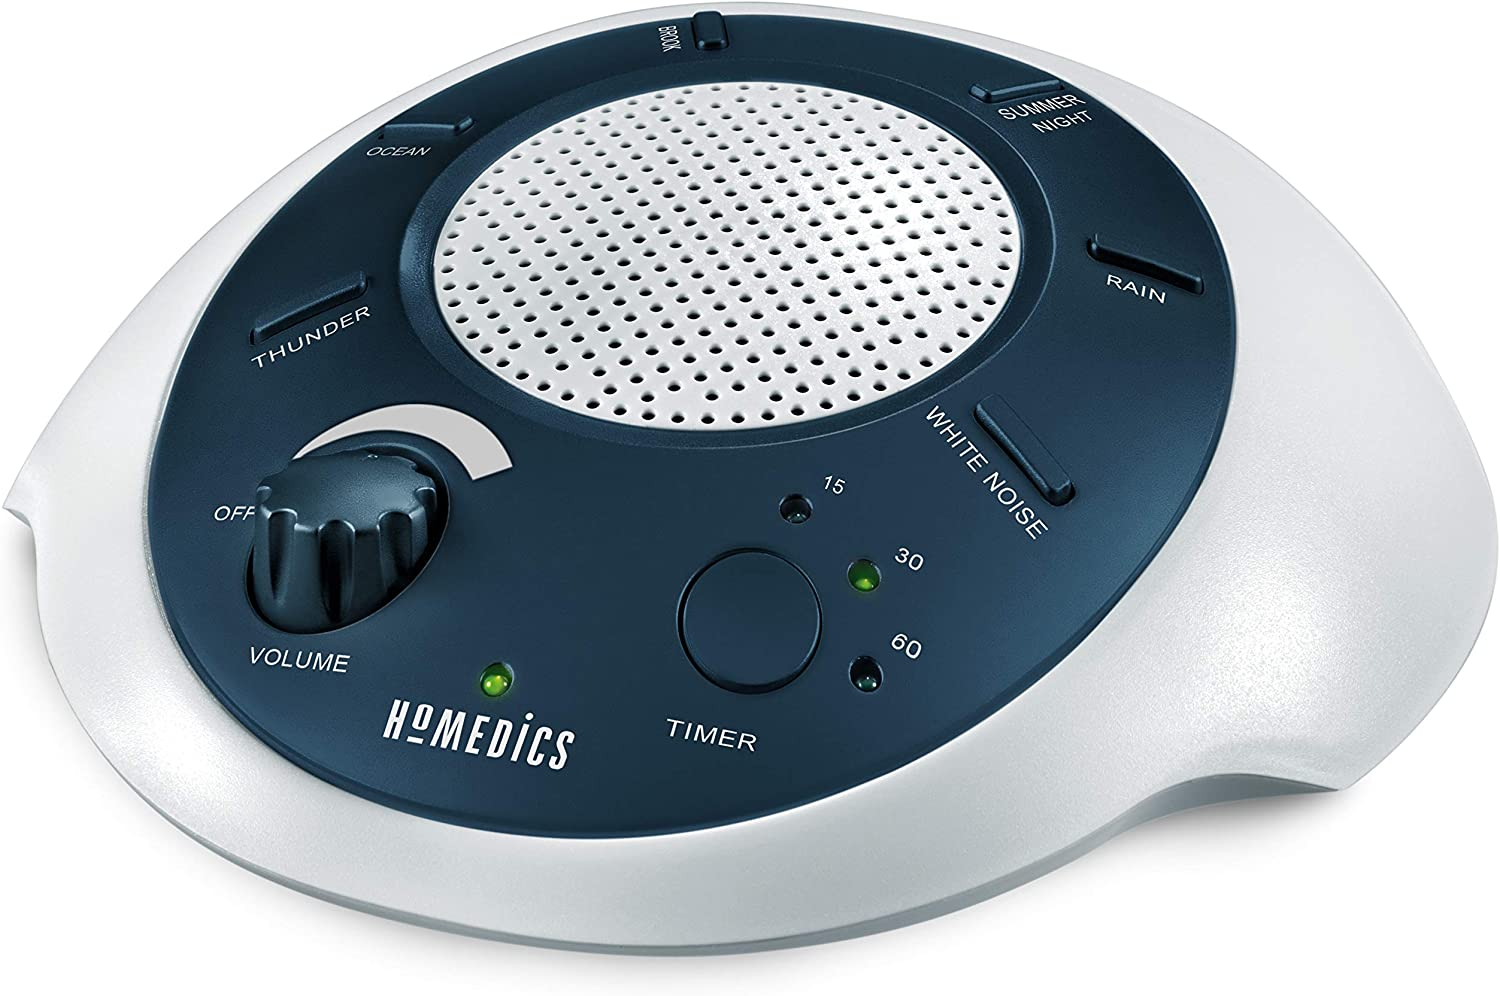 HoMedics White Noise Sound Machine | Portable Sleep Therapy for Home, Office, Baby & Travel | 6 Relaxing & Soothing Nature Sounds, Battery or Adapter Charging Options, Auto-Off Timer | Sound Spa Blue